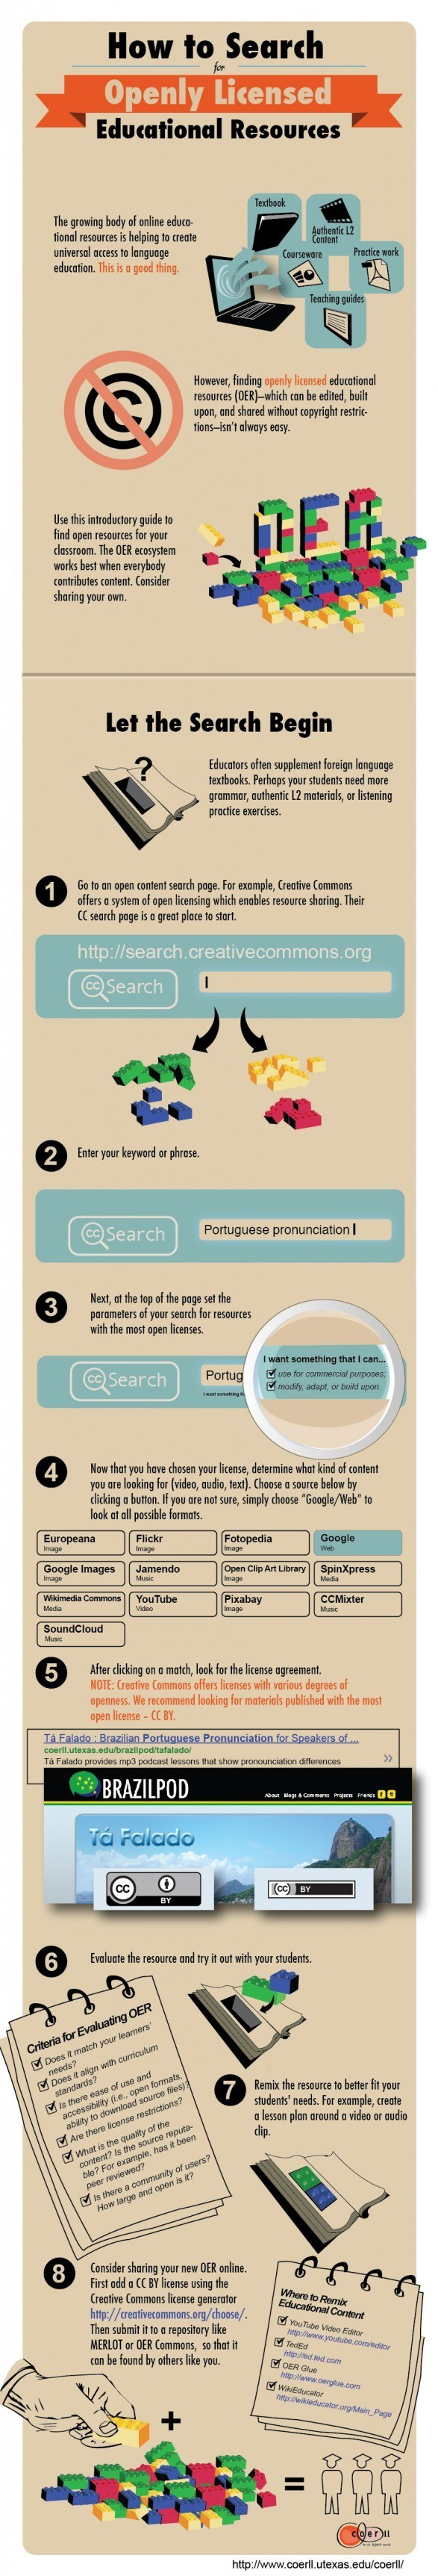 How to Search for Open Educational Resources Infographic